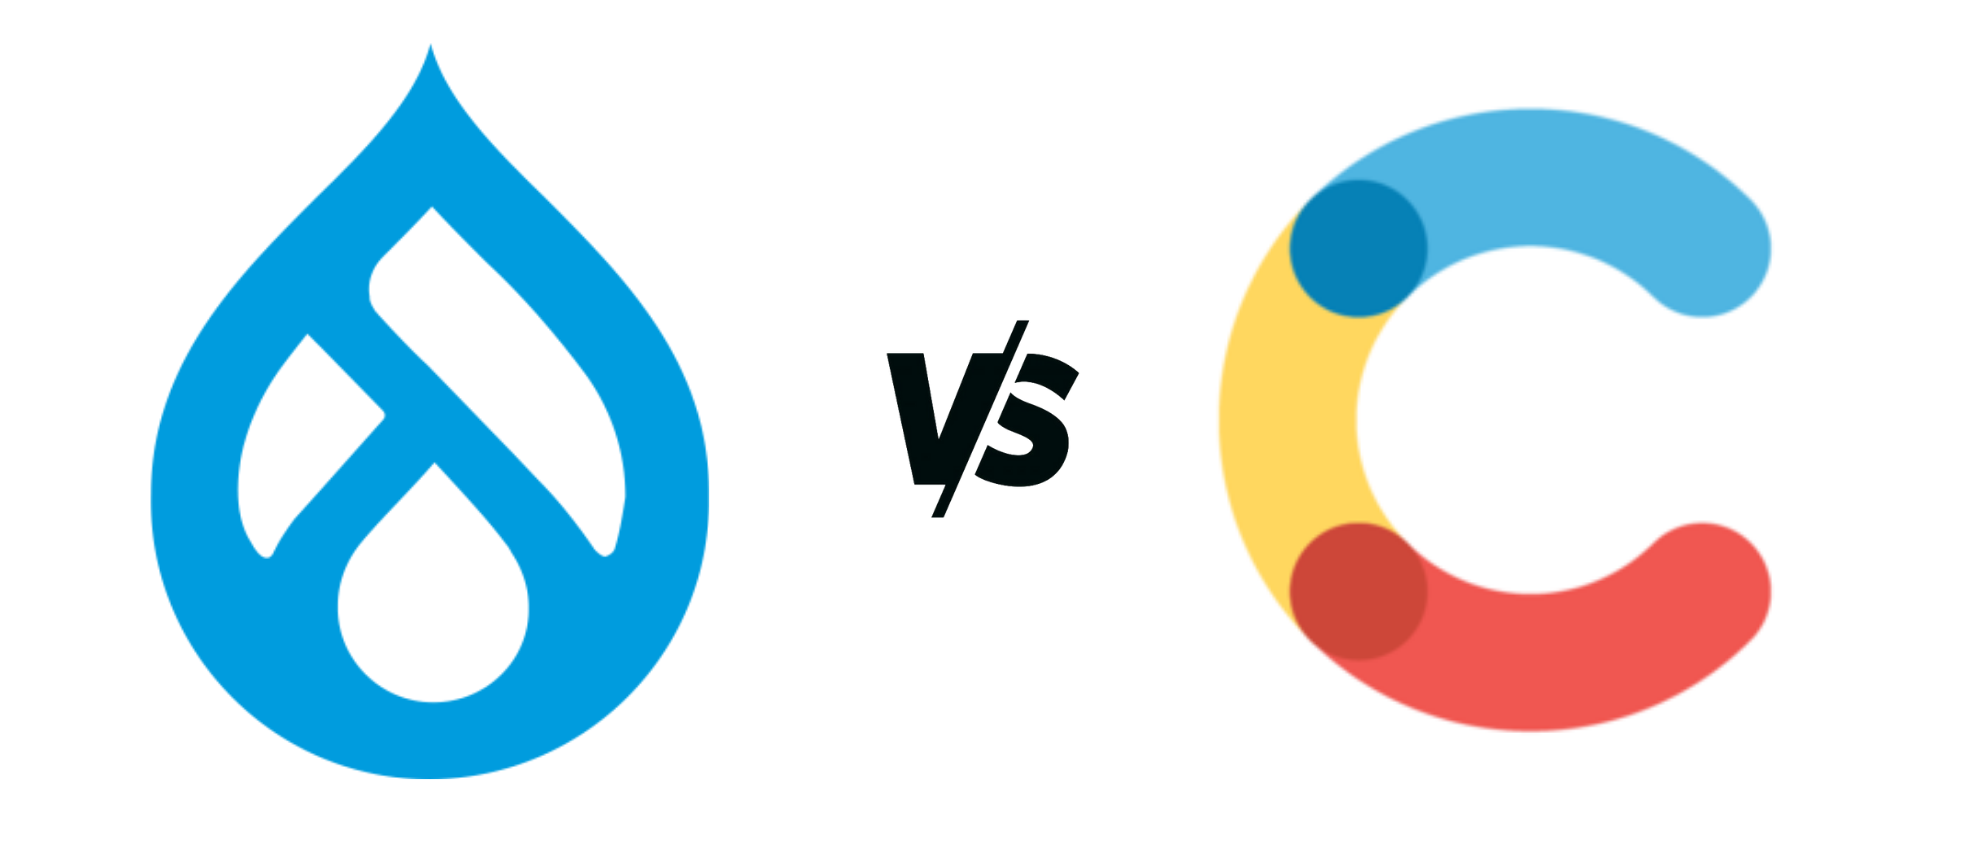 Drupal and Contentful logos can be seen together.